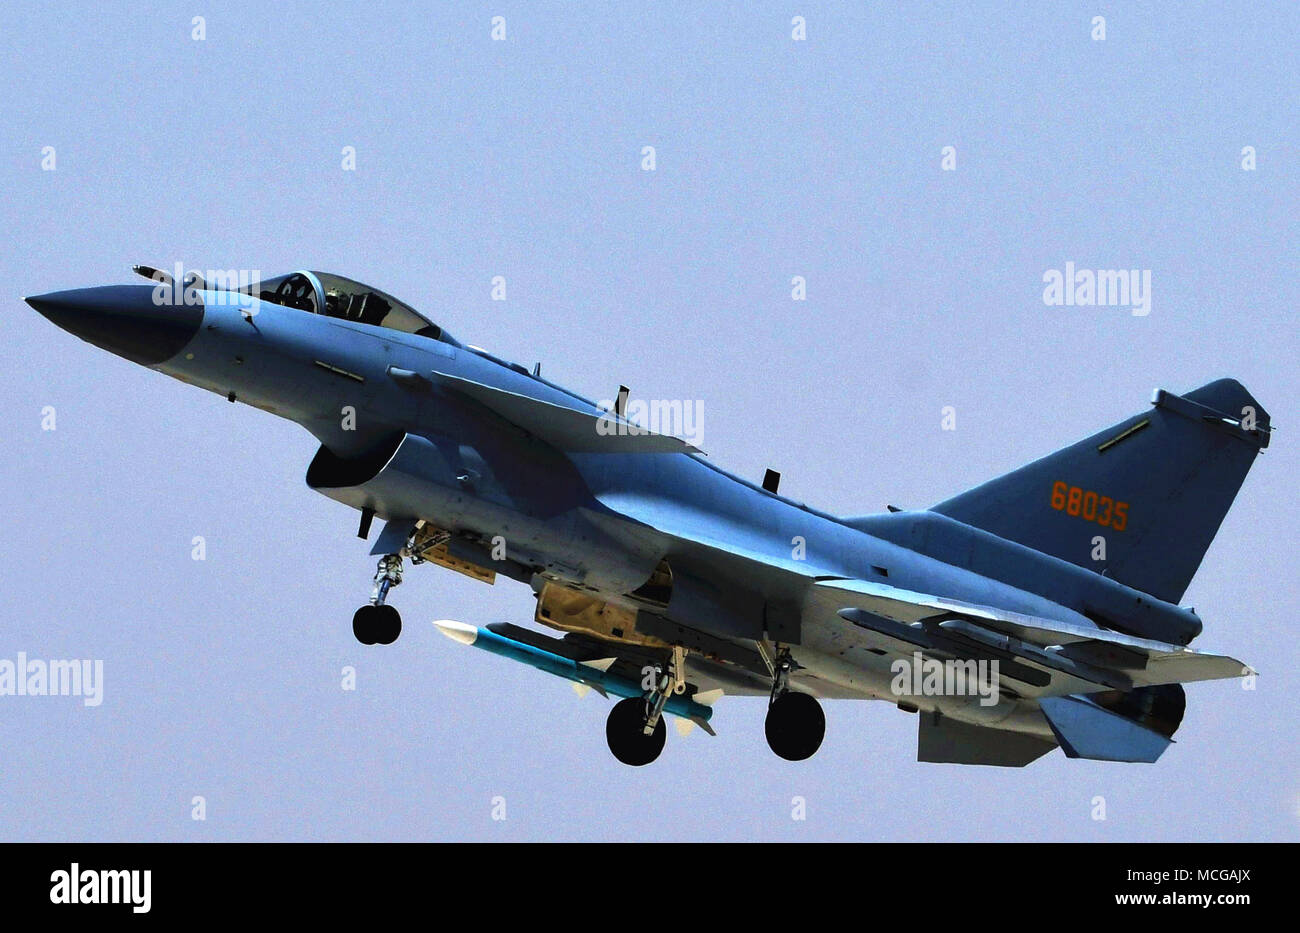 (180416) -- BEIJING, April 16, 2018 (Xinhua) -- Photo taken on April 12, 2018 shows a J-10C fighter jet in a training.  China's new multi-role fighter jet J-10C began combat duty Monday, the People's Liberation Army (PLA) air force announced.  It is China's third-generation supersonic fighter and made its debut when the PLA marked its 90th anniversary in July 2017 at Zhurihe military training base in Inner Mongolia Autonomous Region. Equipped with an advanced avionics system and various airborne weapons, the domestically-developed fighter has airstrike capabilities within medium and close rang - Stock Image